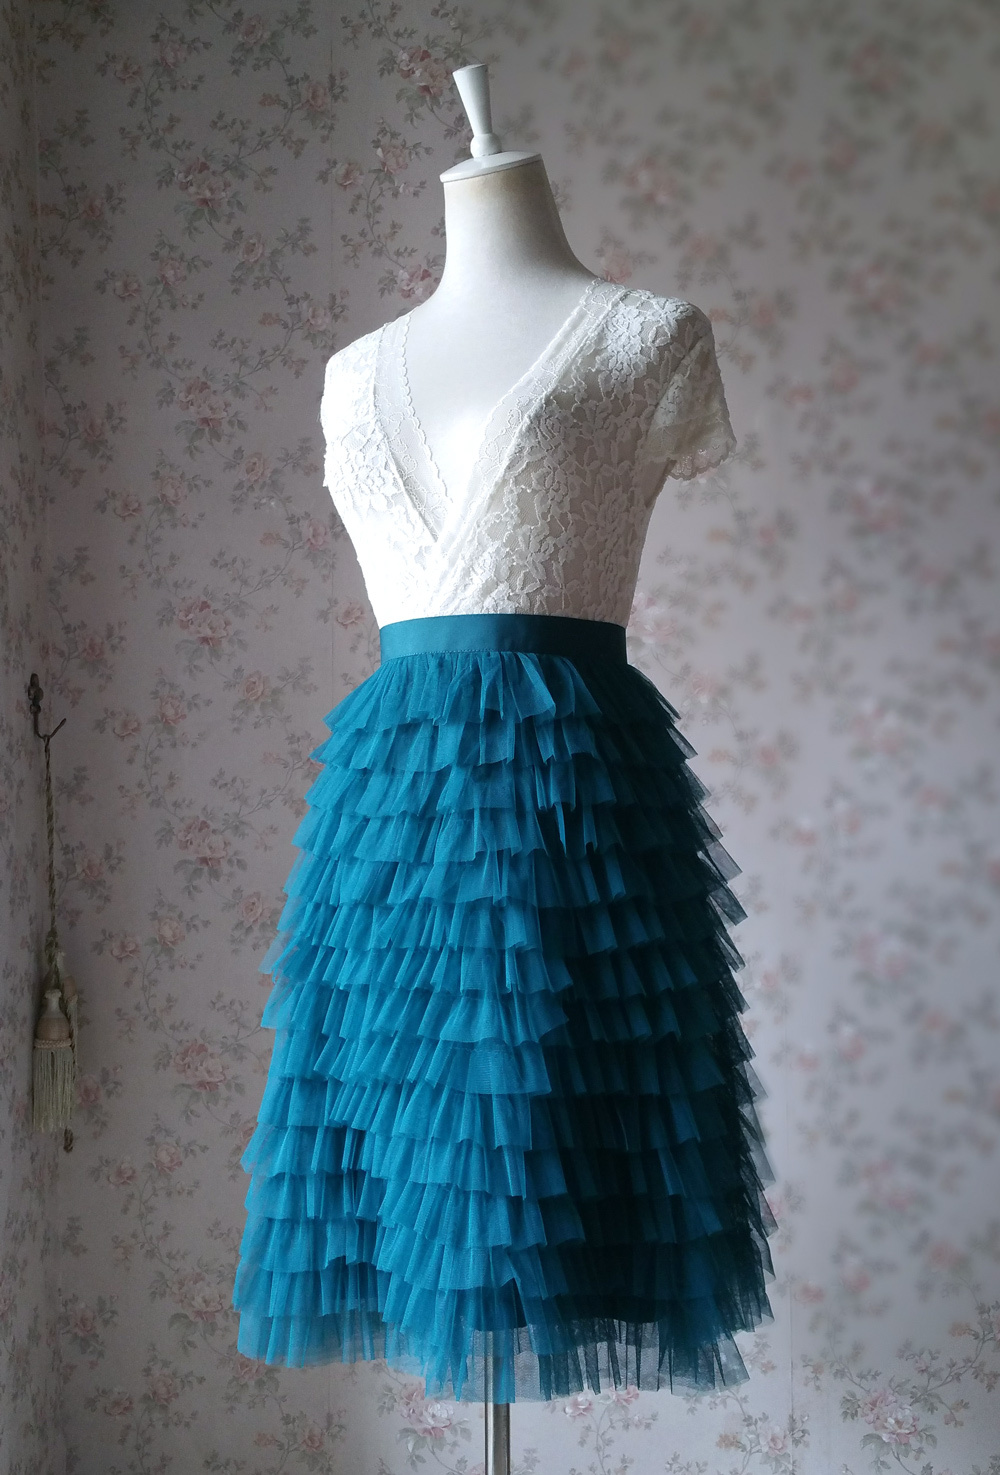 DEEP GREEN High Waist Knee Length Tiered Tulle Skirt Wedding Party Tulle Skirts